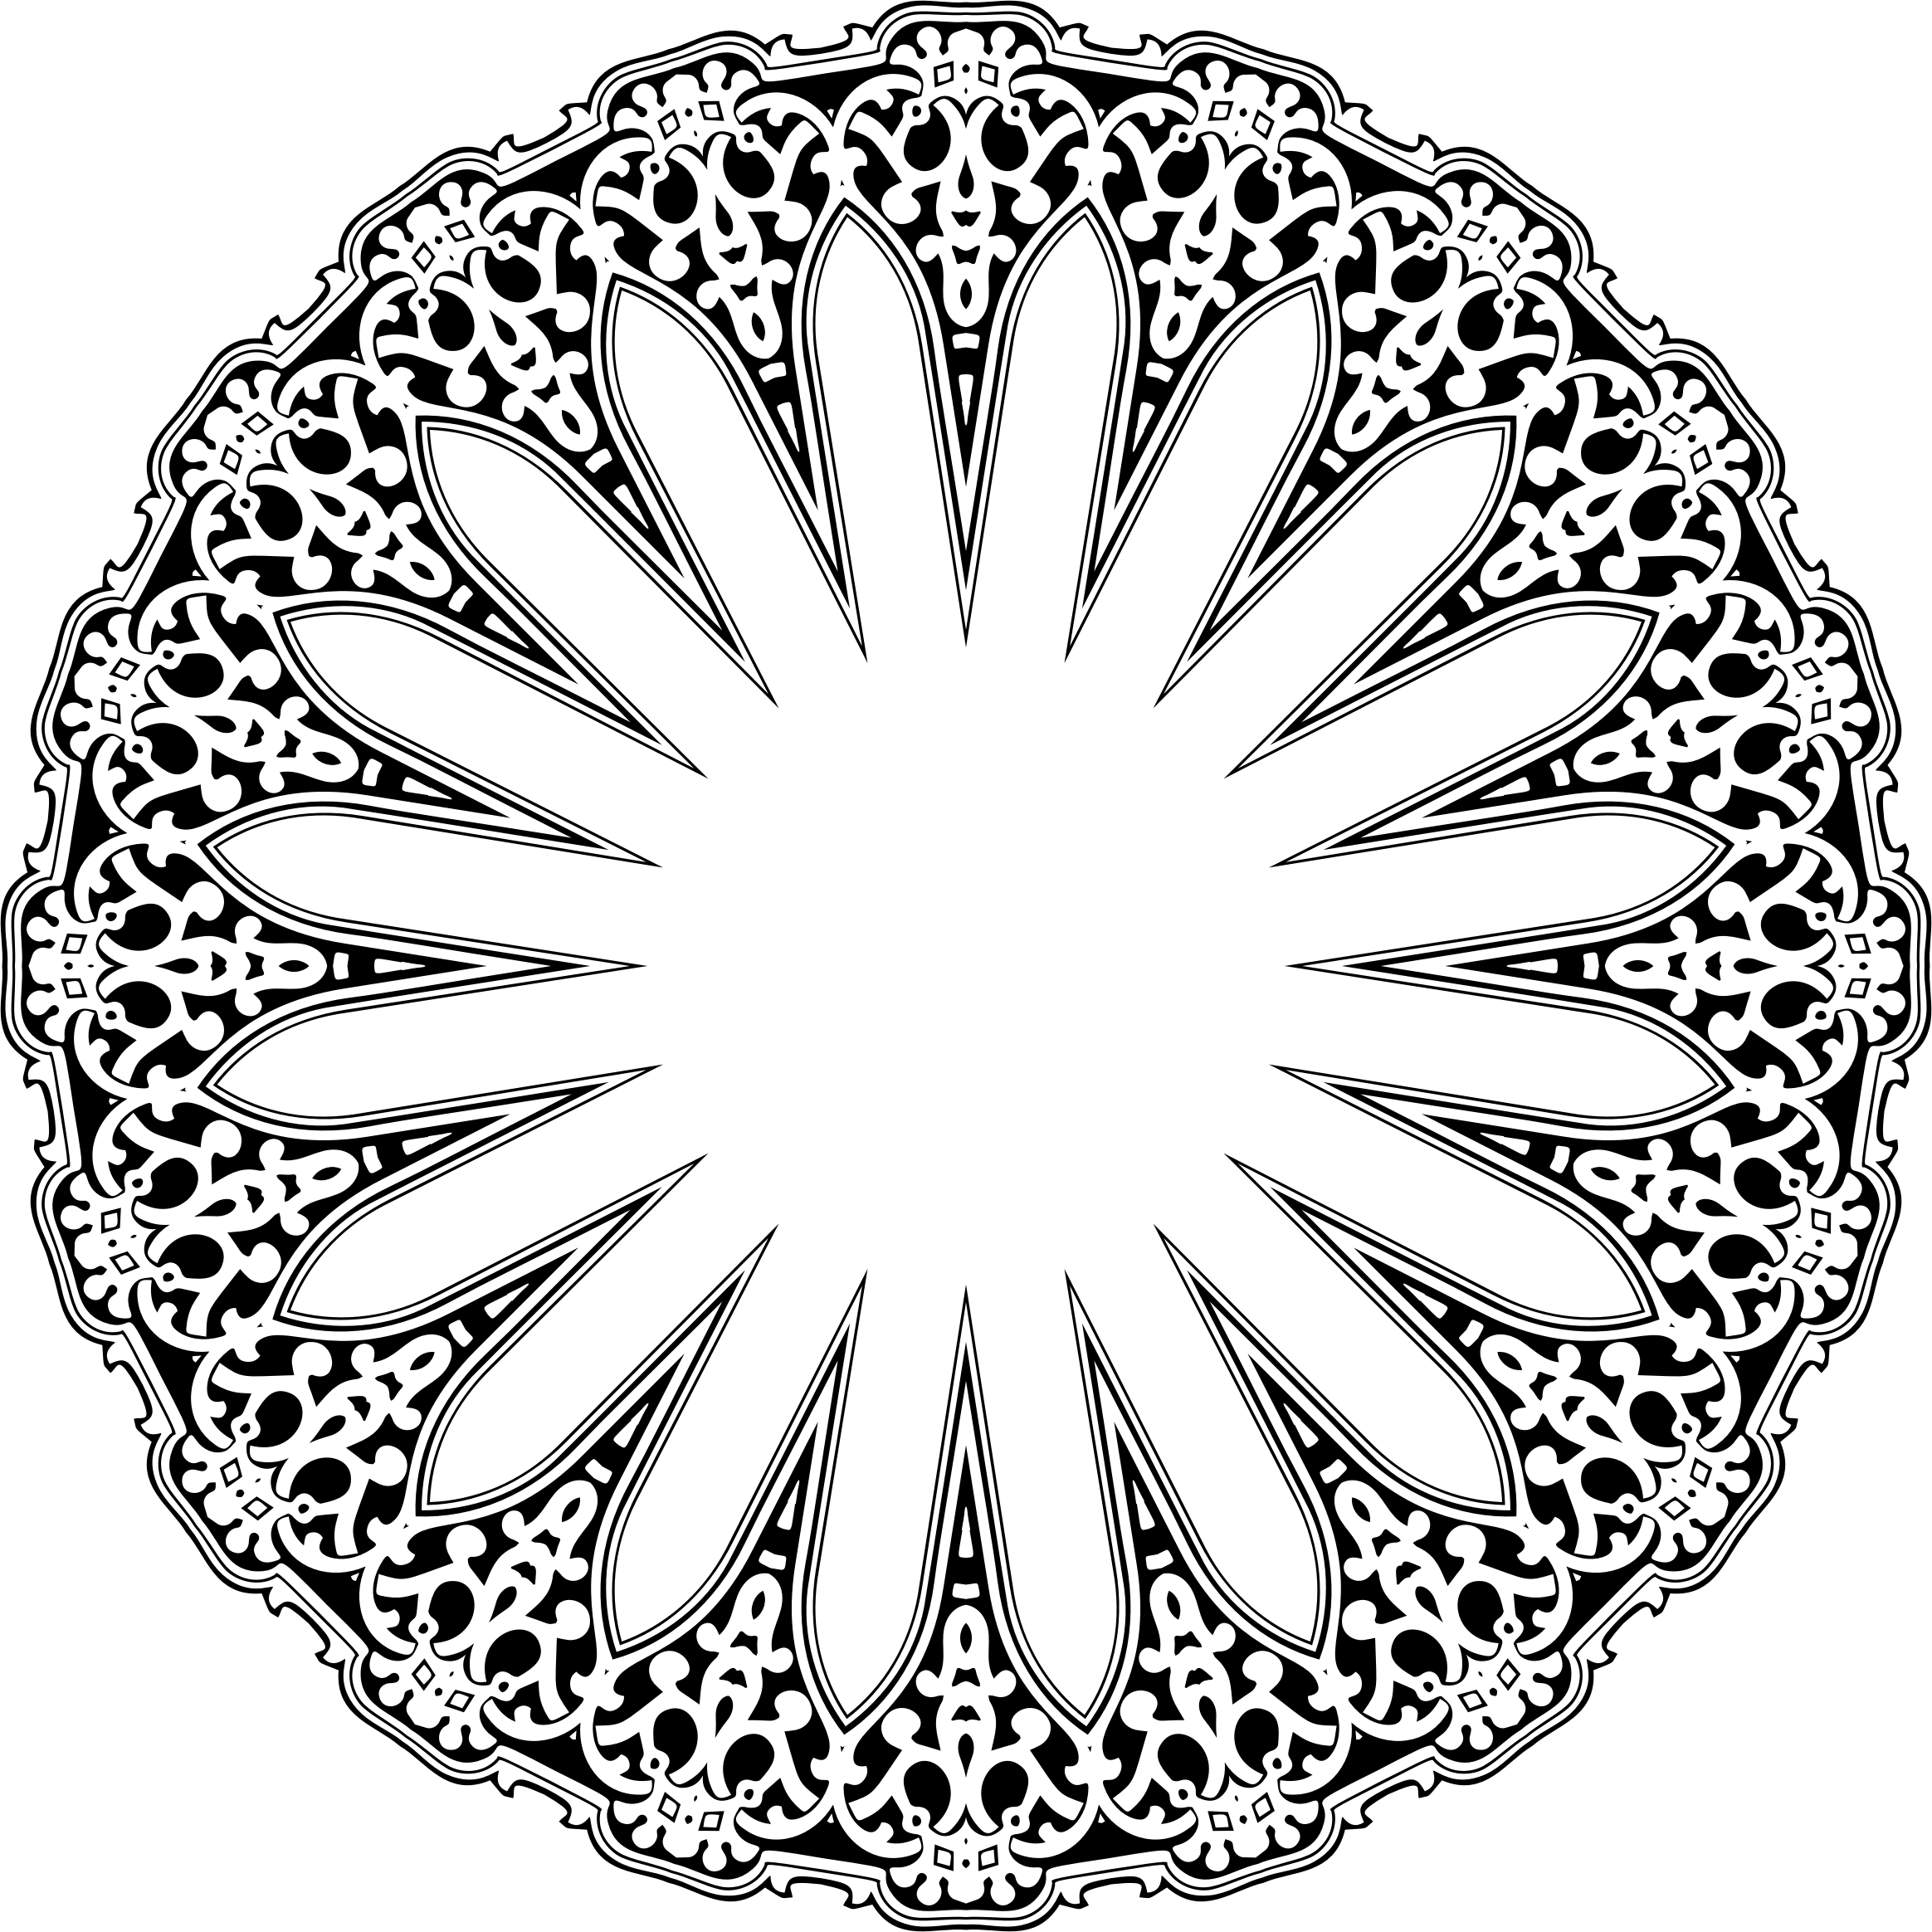 Vintage Decorative Ornamental Design 4 by GDJ